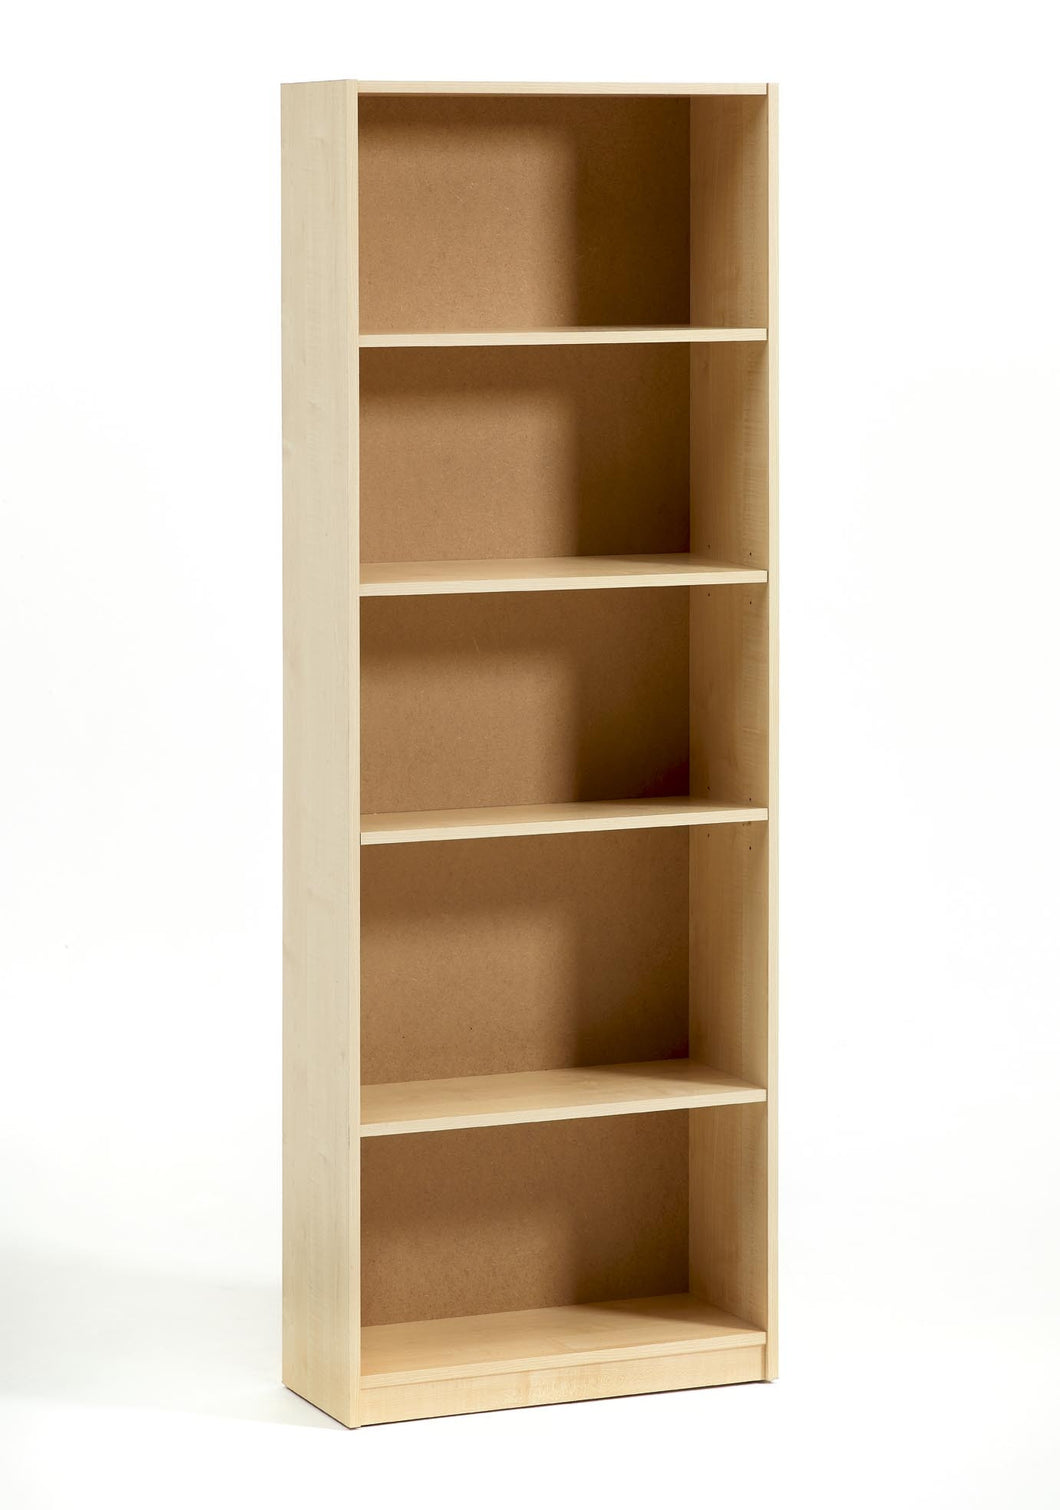 Calgary Bookcase - Property Letting Furniture